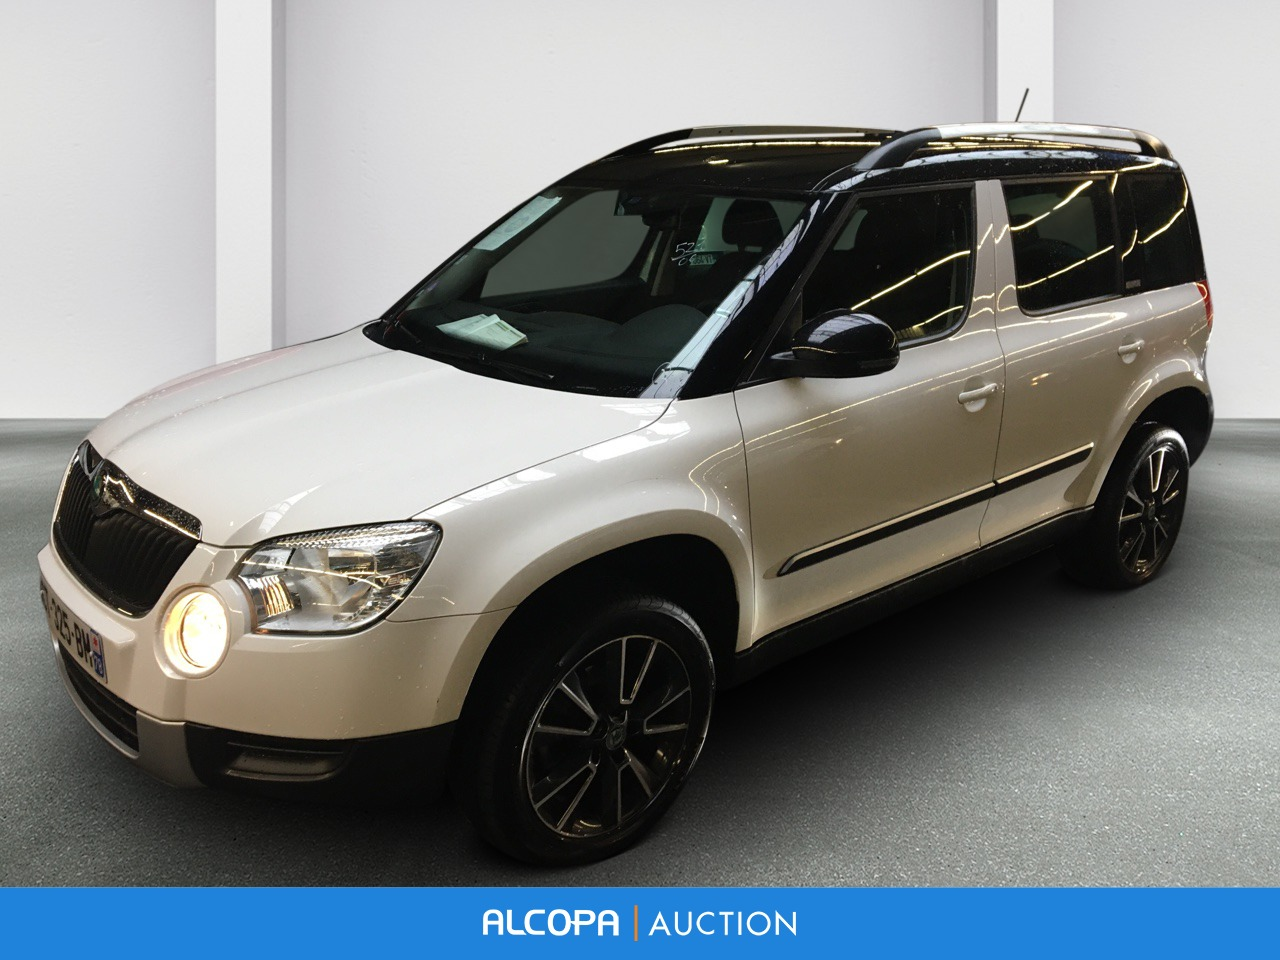 Skoda Yeti Yeti 1 2 Tsi 105 Adventure Alcopa Auction